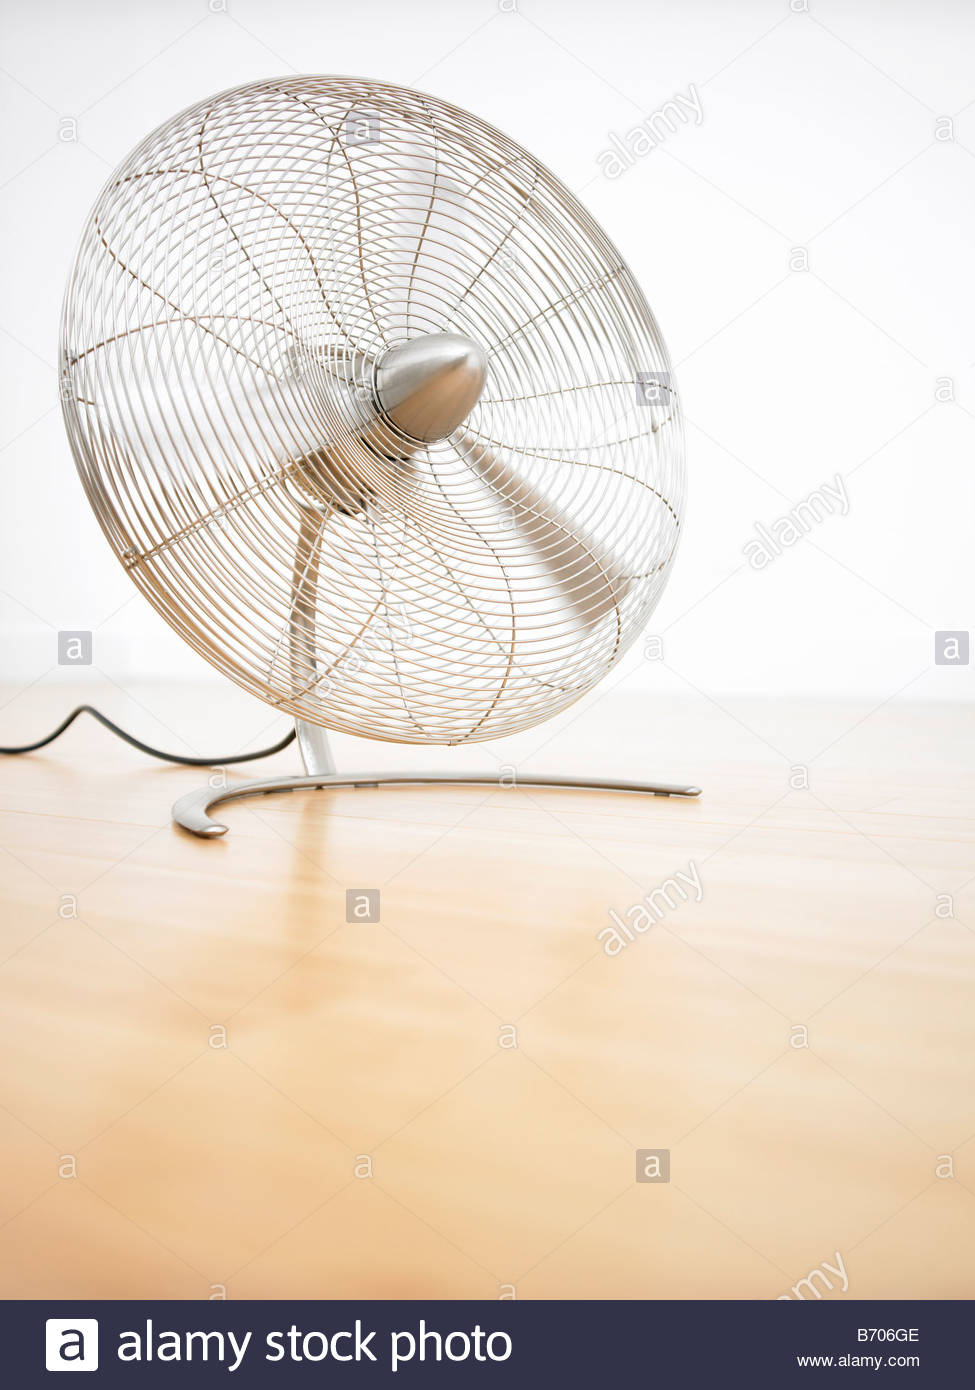 Fan blowing air - Stock Image